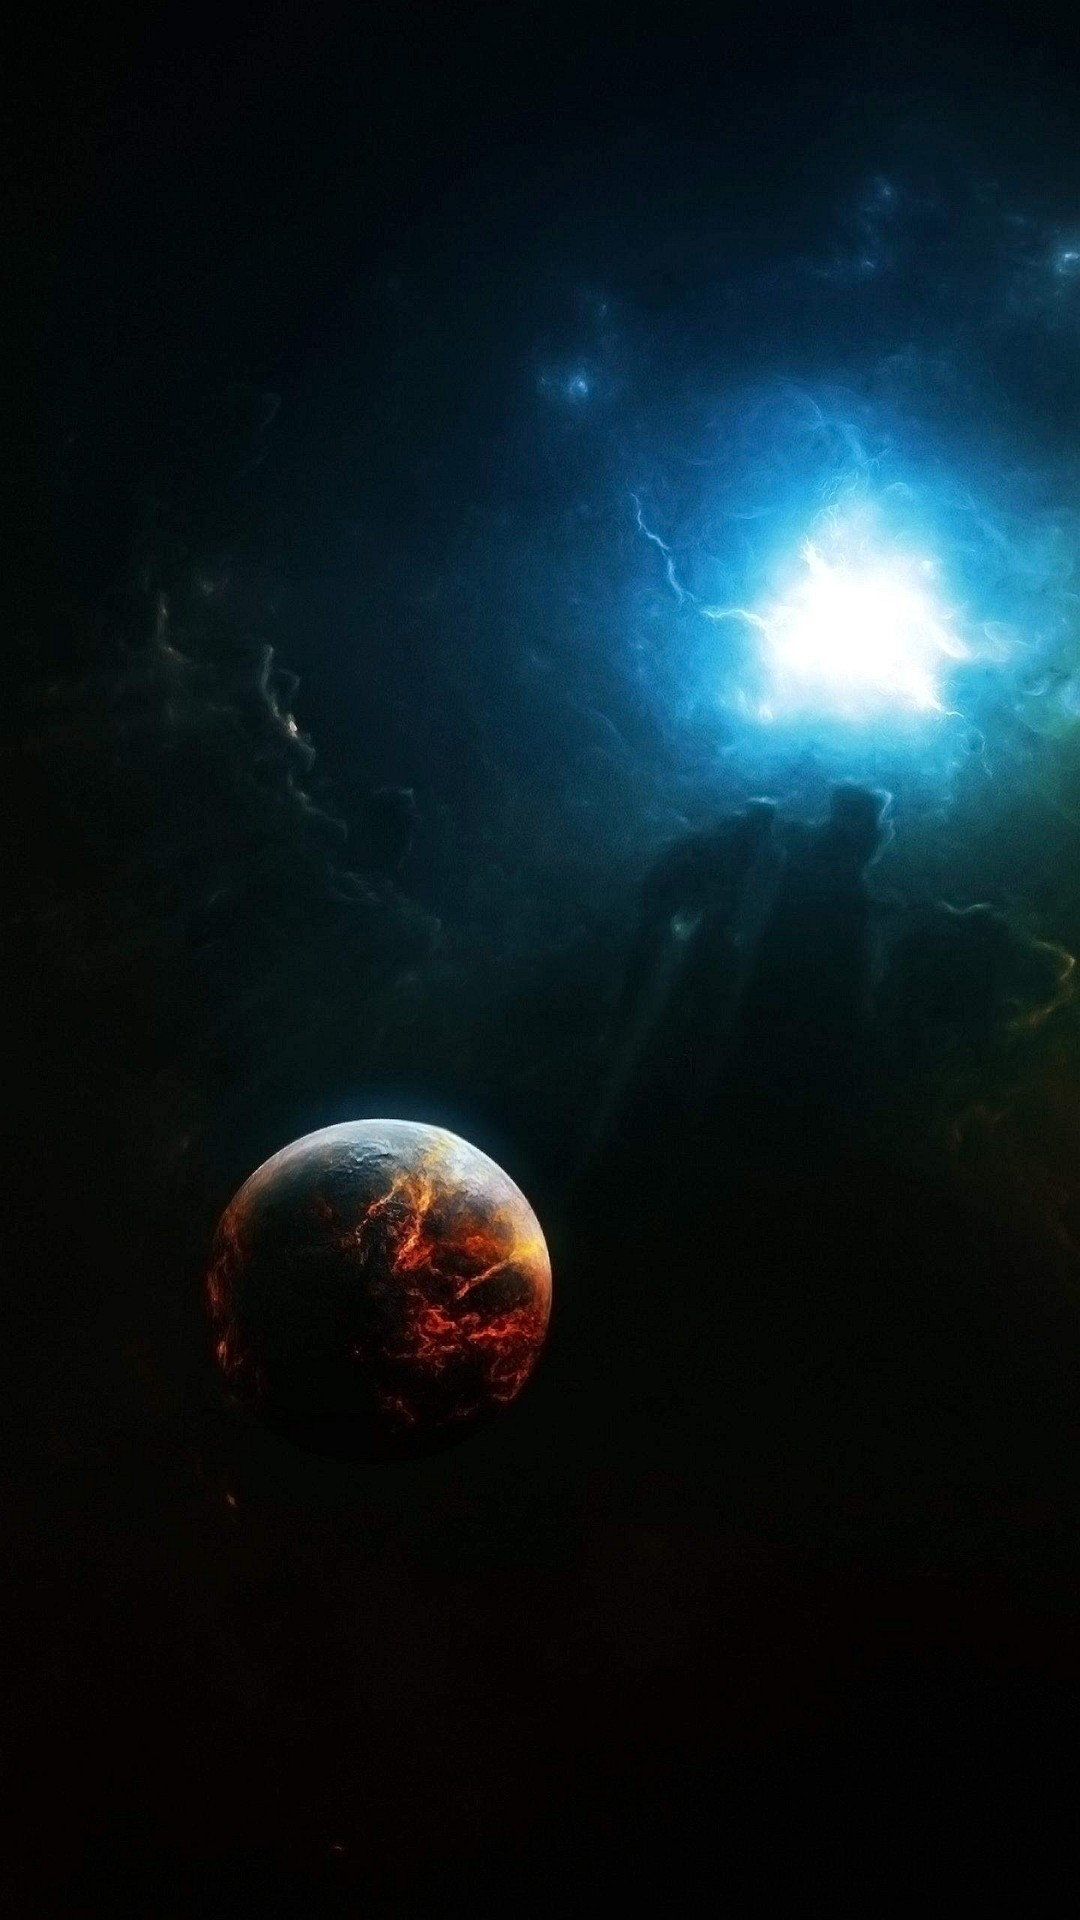 Wallpaper iphone 6 plus space energy planet 5 5 inches